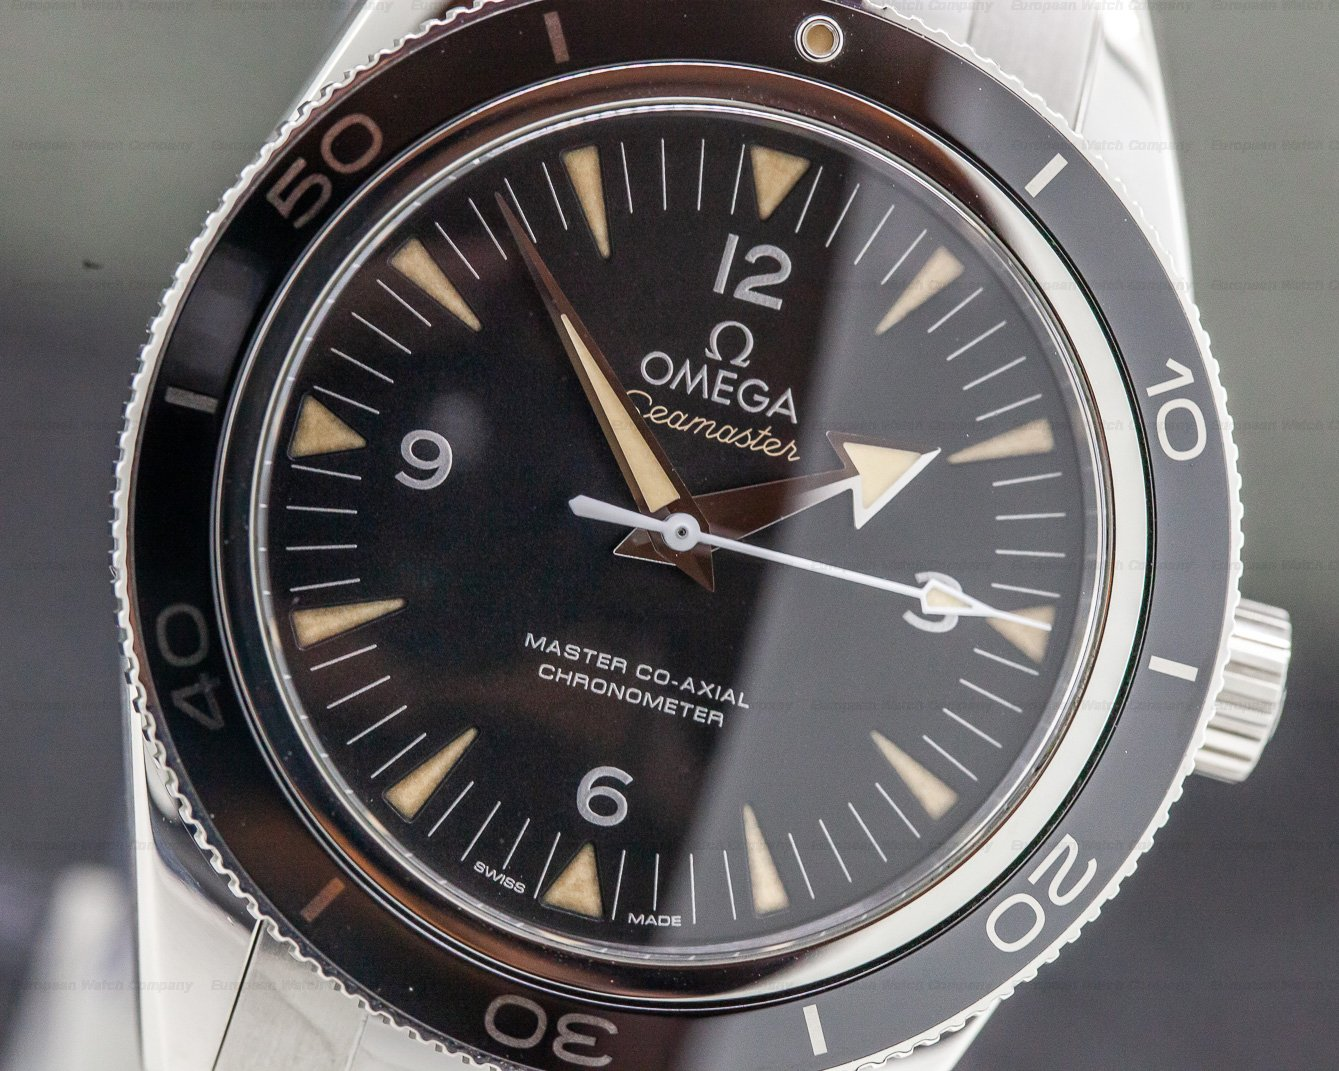 Omega 233.30.41.21.01.001 Omega Seamaster 300M Master Co-Axial SS / SS 41MM